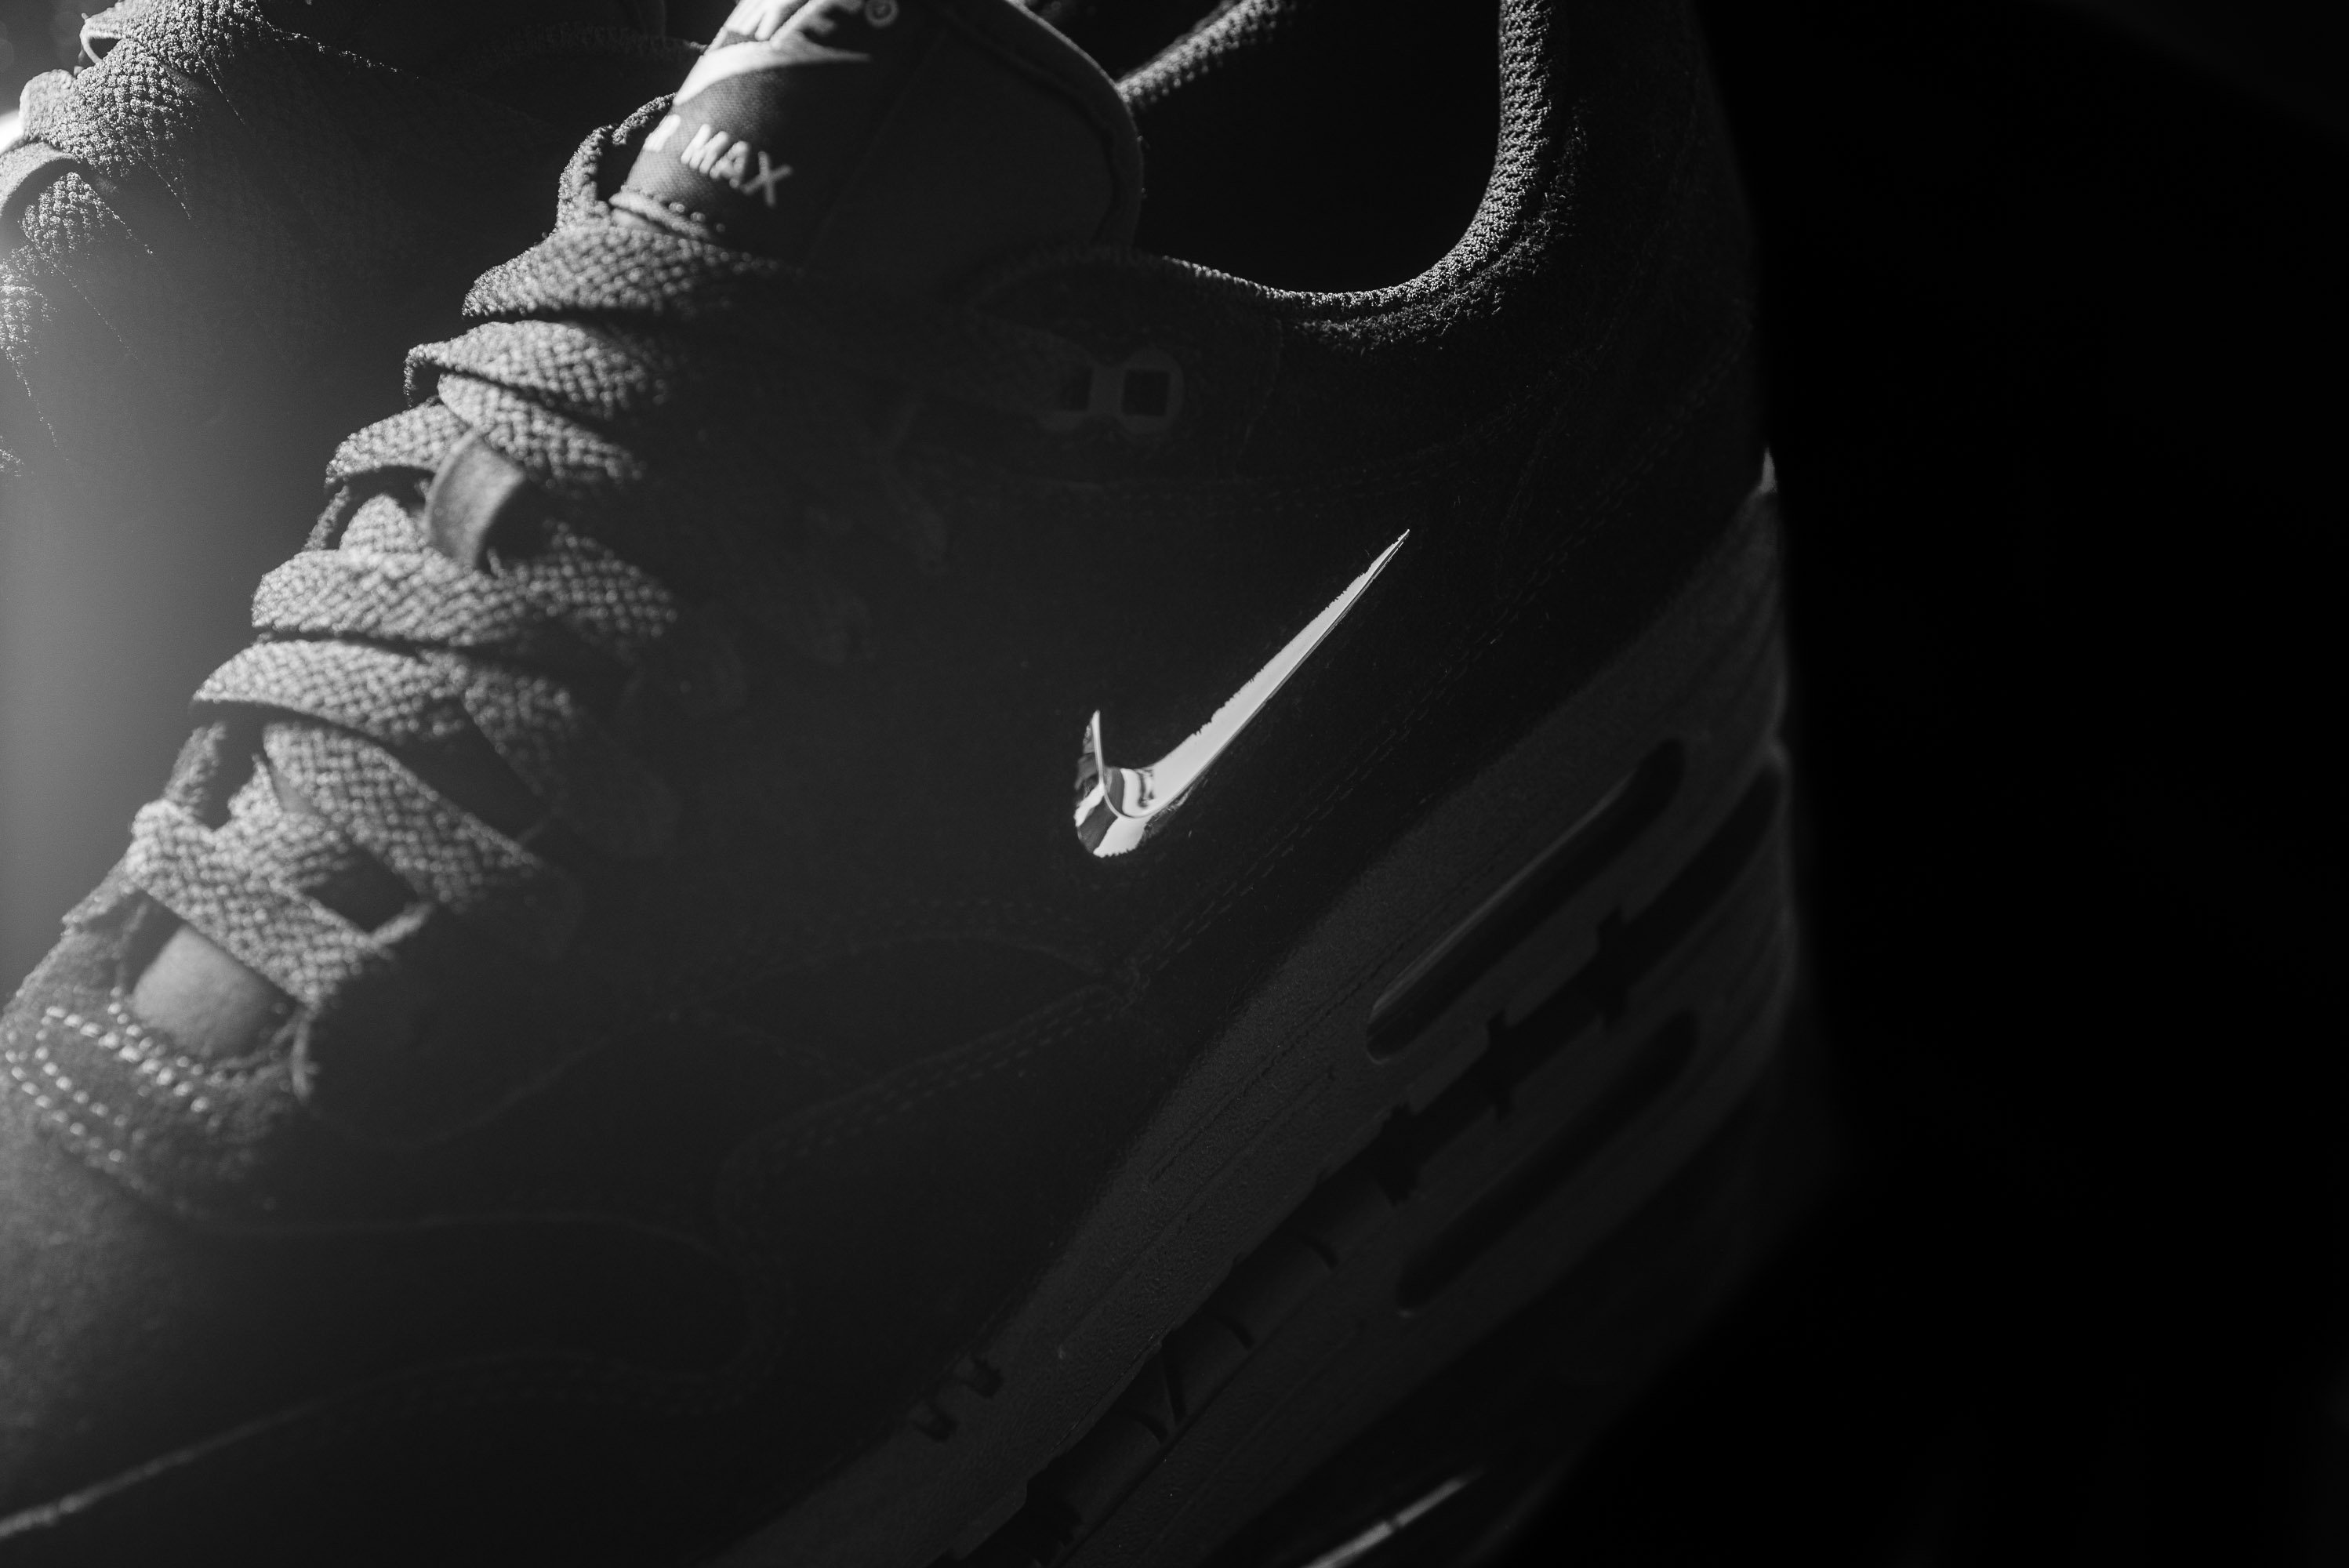 The Nike Air Max 1 Jewel Just Released In Black And Chrome